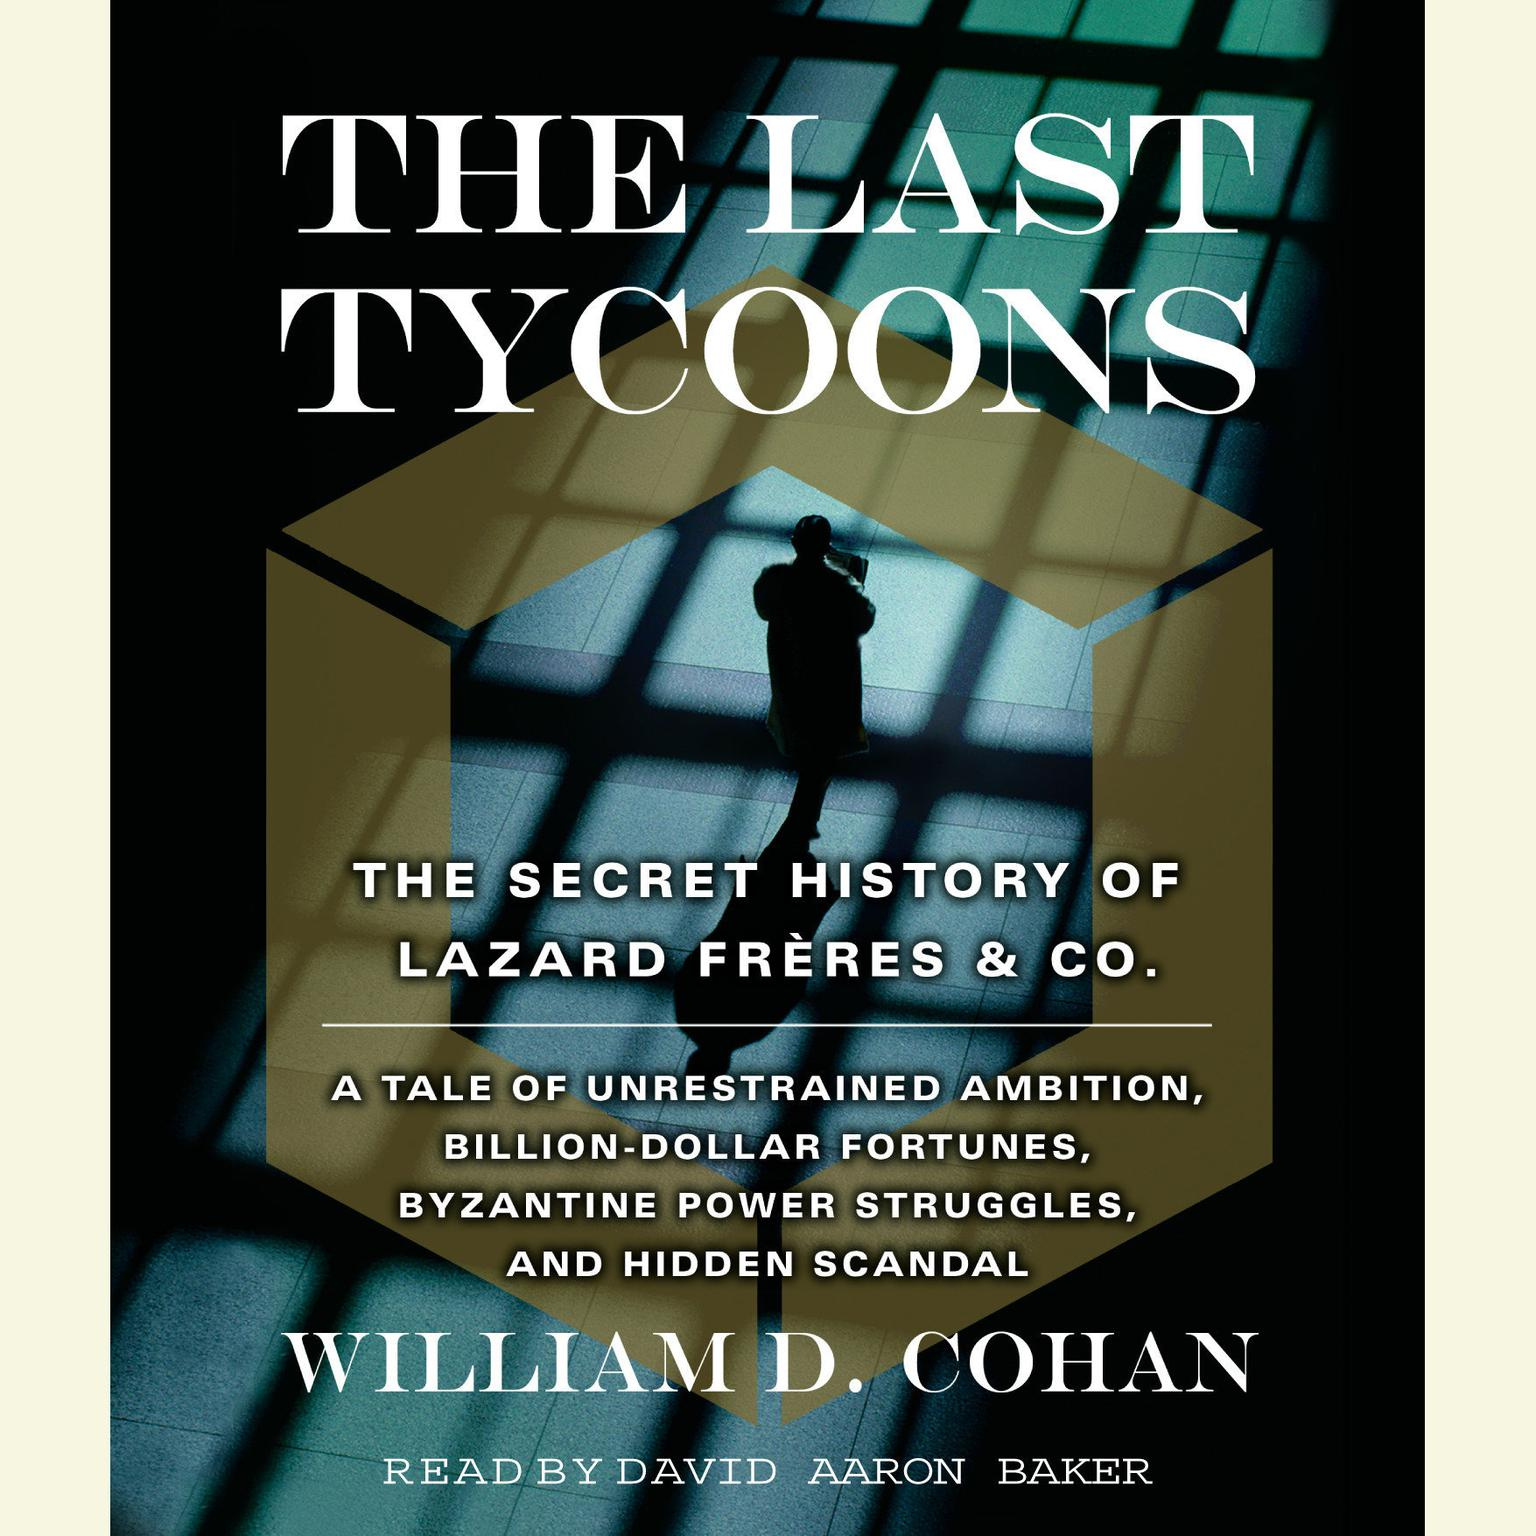 Printable The Last Tycoons: The Secret History of Lazard Freres & Co. Audiobook Cover Art